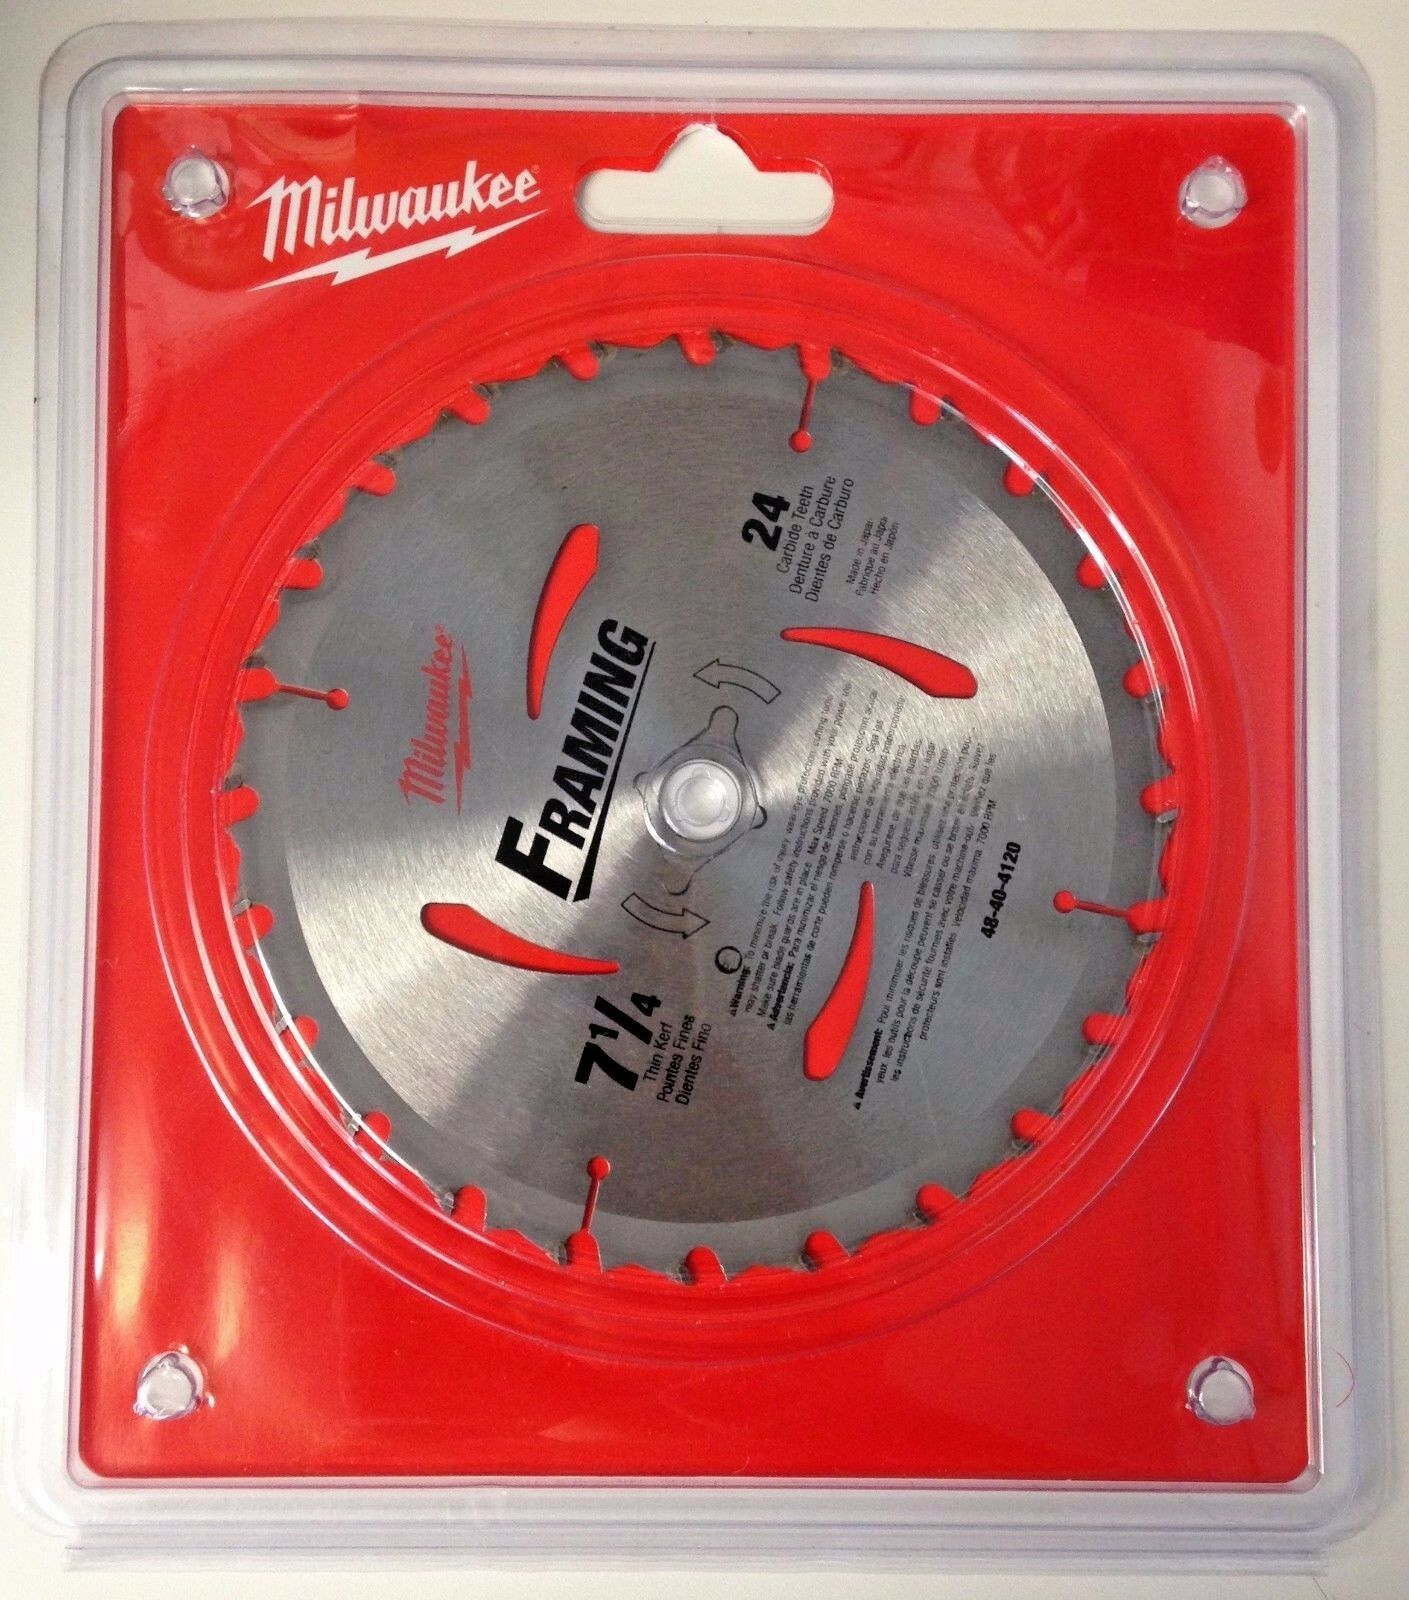 "Primary image for Milwaukee 48-40-4120 7-1/4"" x 24 Carbide Tooth Framing Circular Saw Blade Japan"